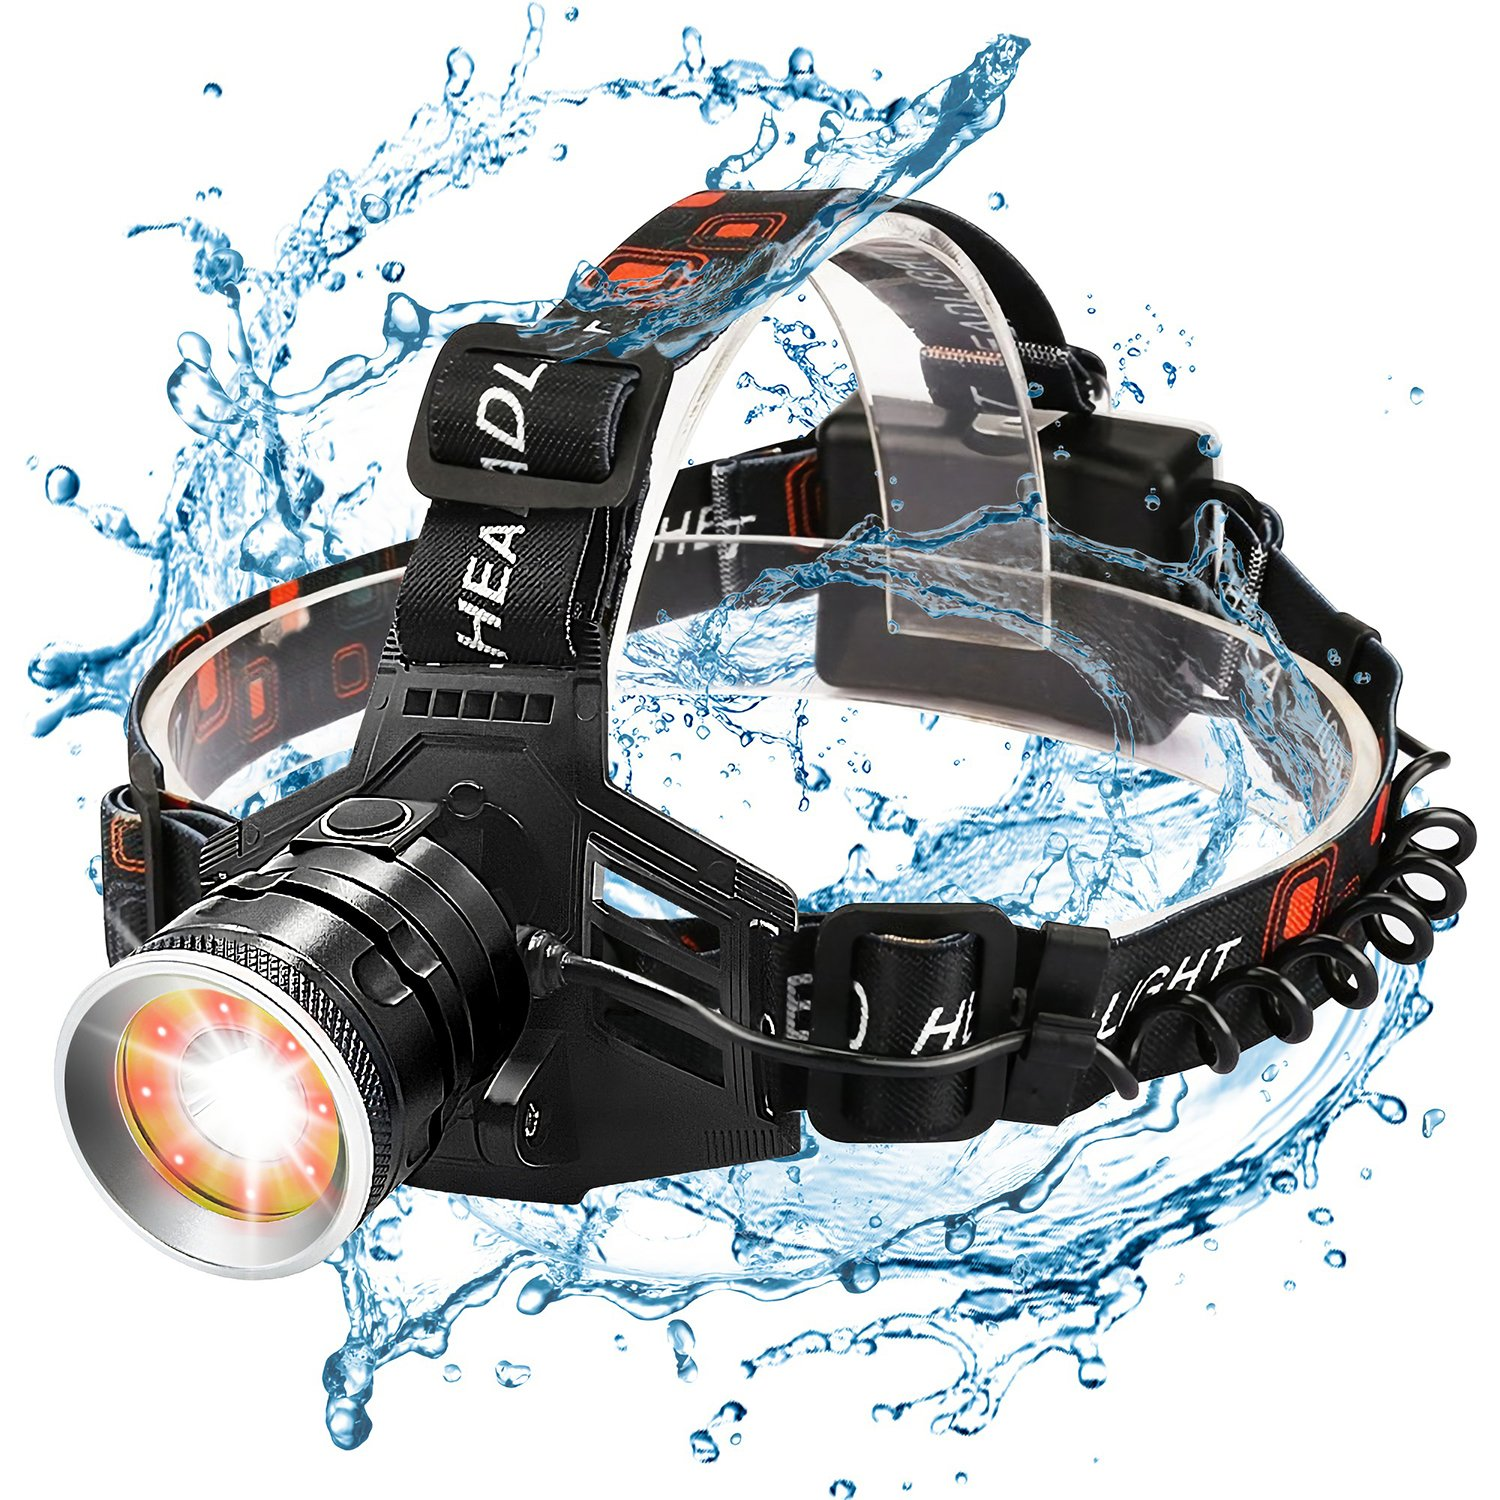 Wsky Led Headlamp Flashlight - Best S6000 Powerful Waterproof Headlamp - Red and White Light - Perfect for Working Camping Biking Home Emergency or Gift-Giving (Batteries Not Included)